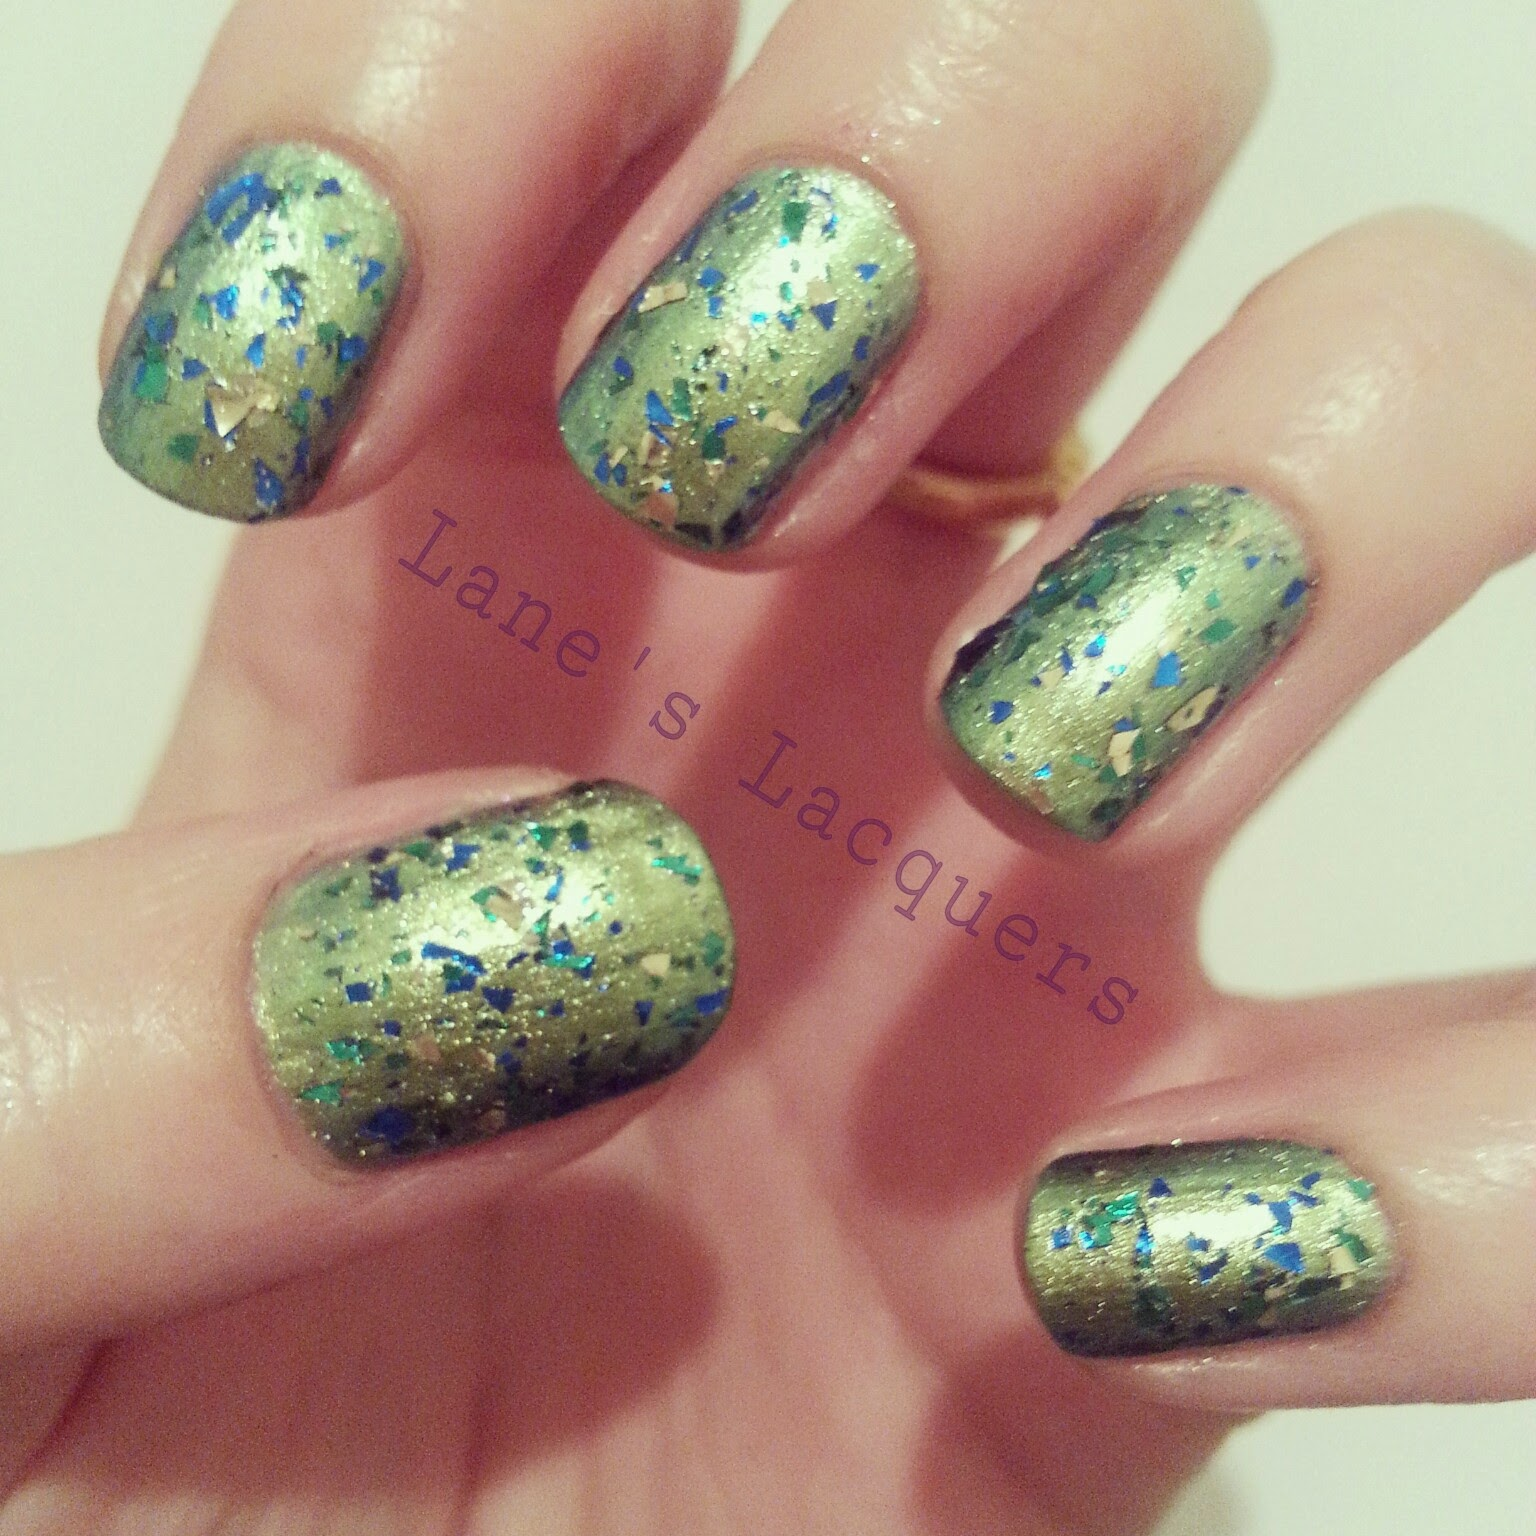 barry-m-aquarium-green-and-glitter-aqnp1-swatch-manicure